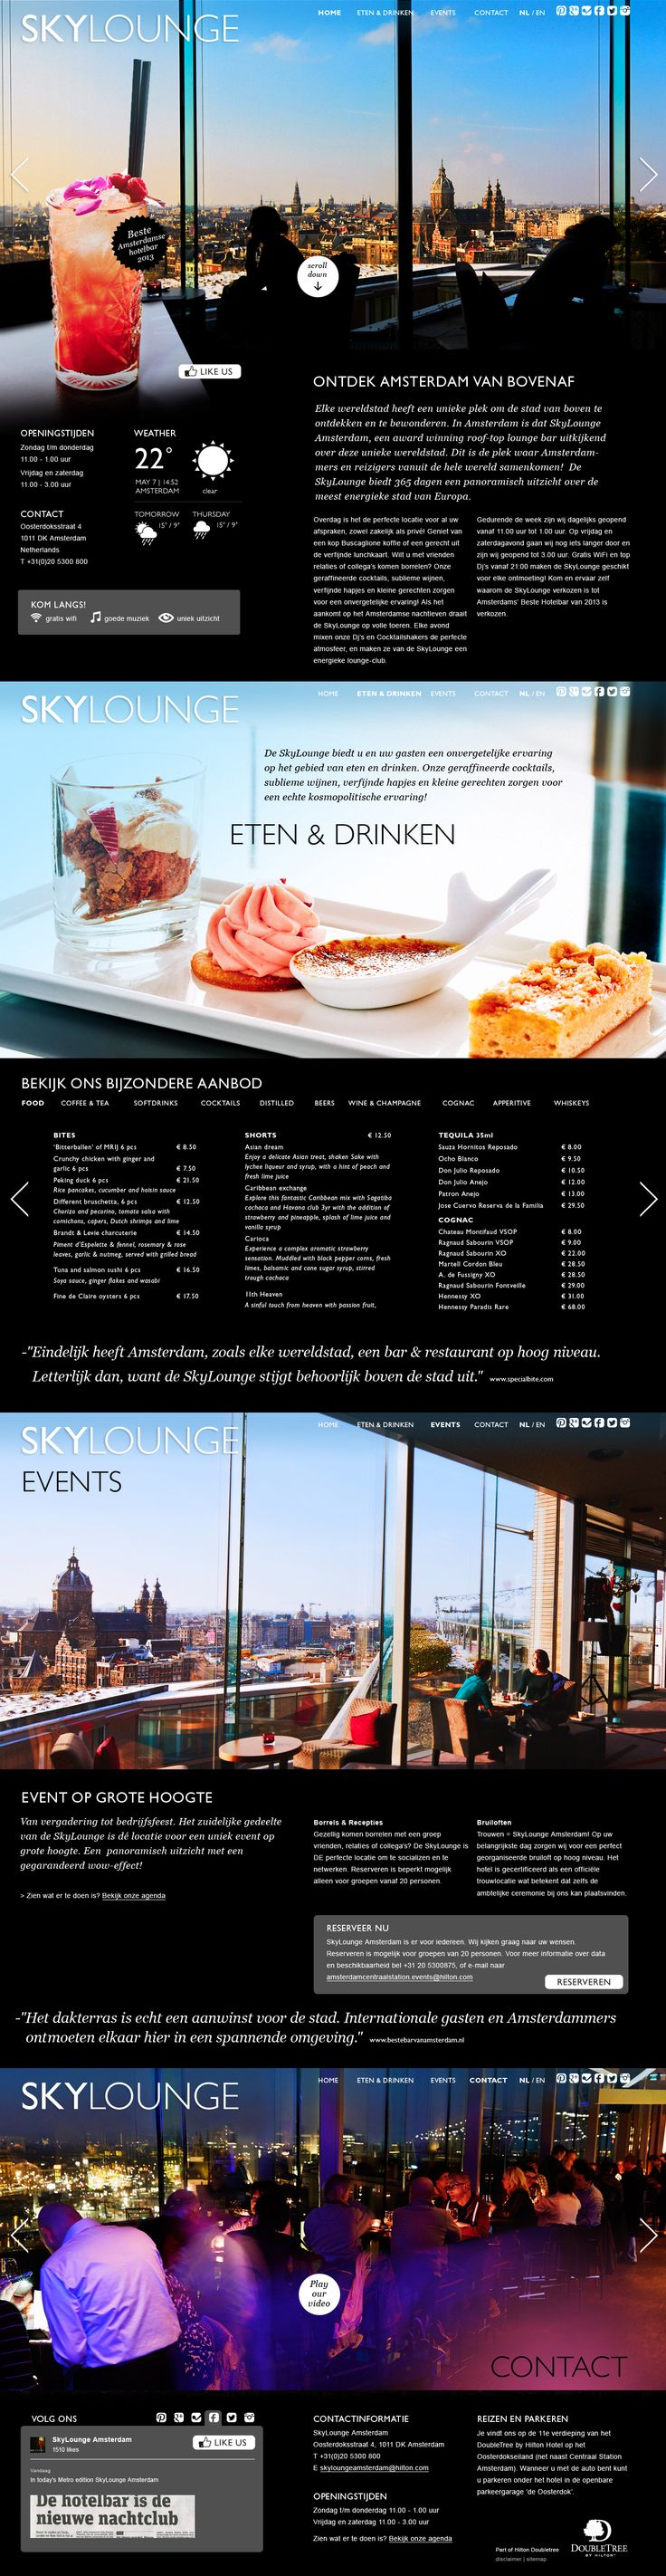 One-page website voor Hilton Skylounge